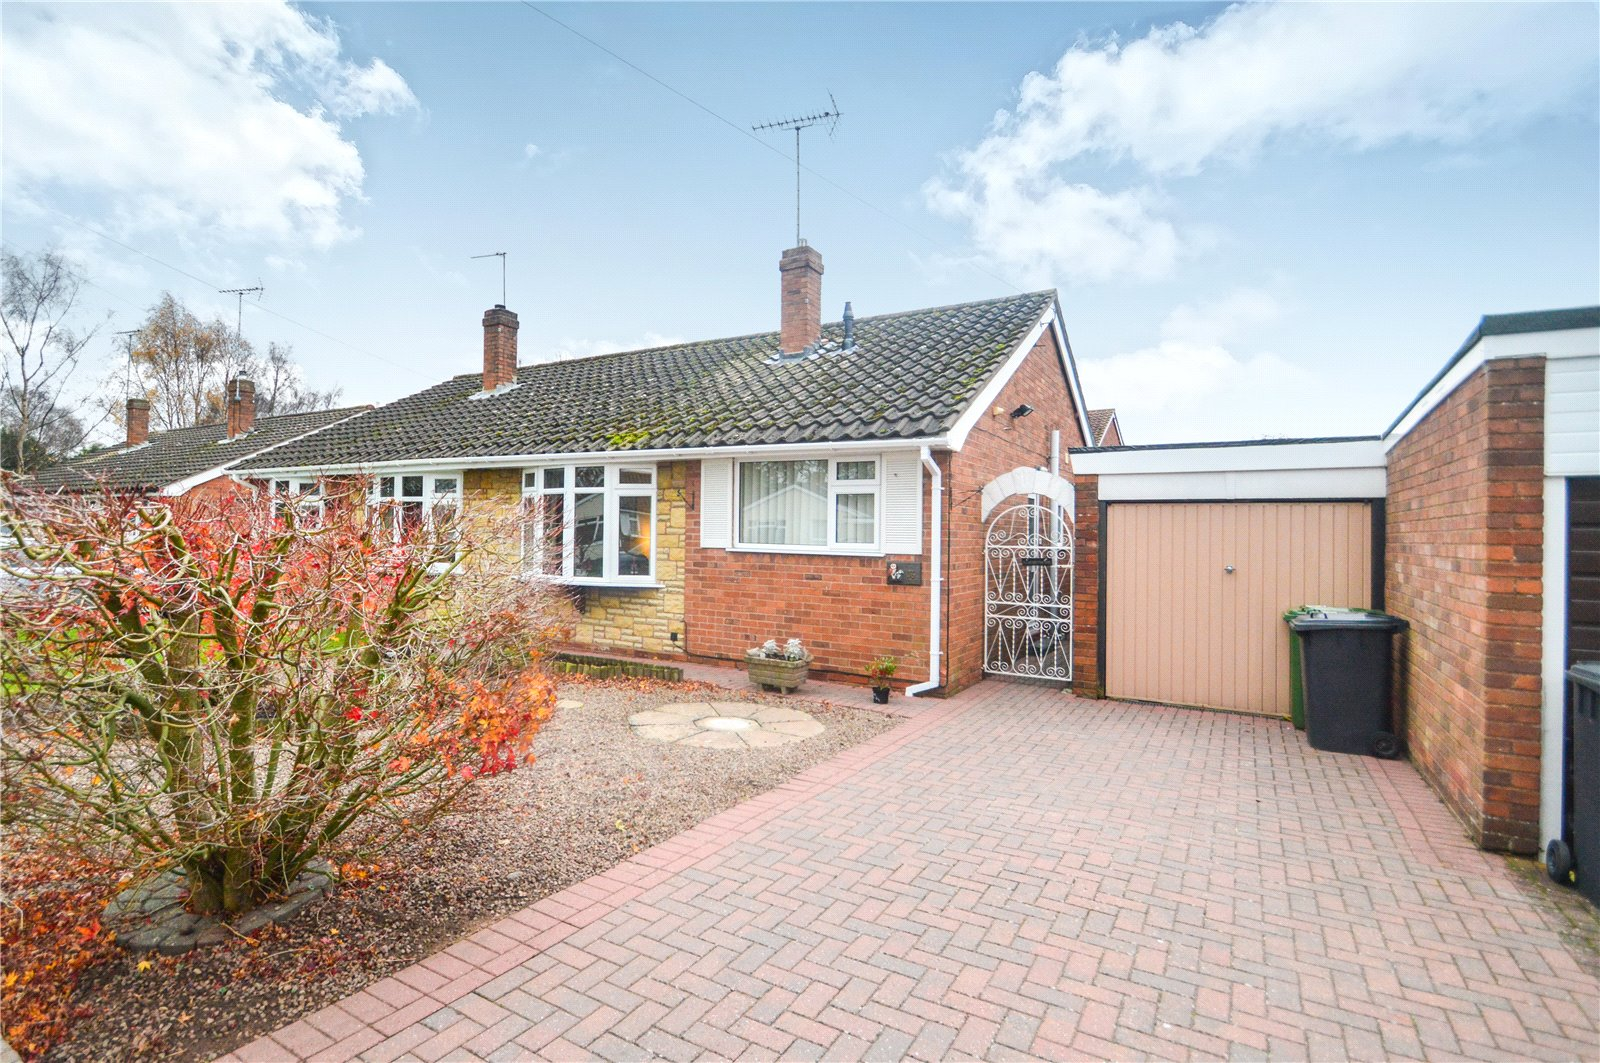 2 Bedrooms Semi Detached Bungalow for sale in 36 Snowdon Close, Franche, Kidderminster, Worcestershire, DY11